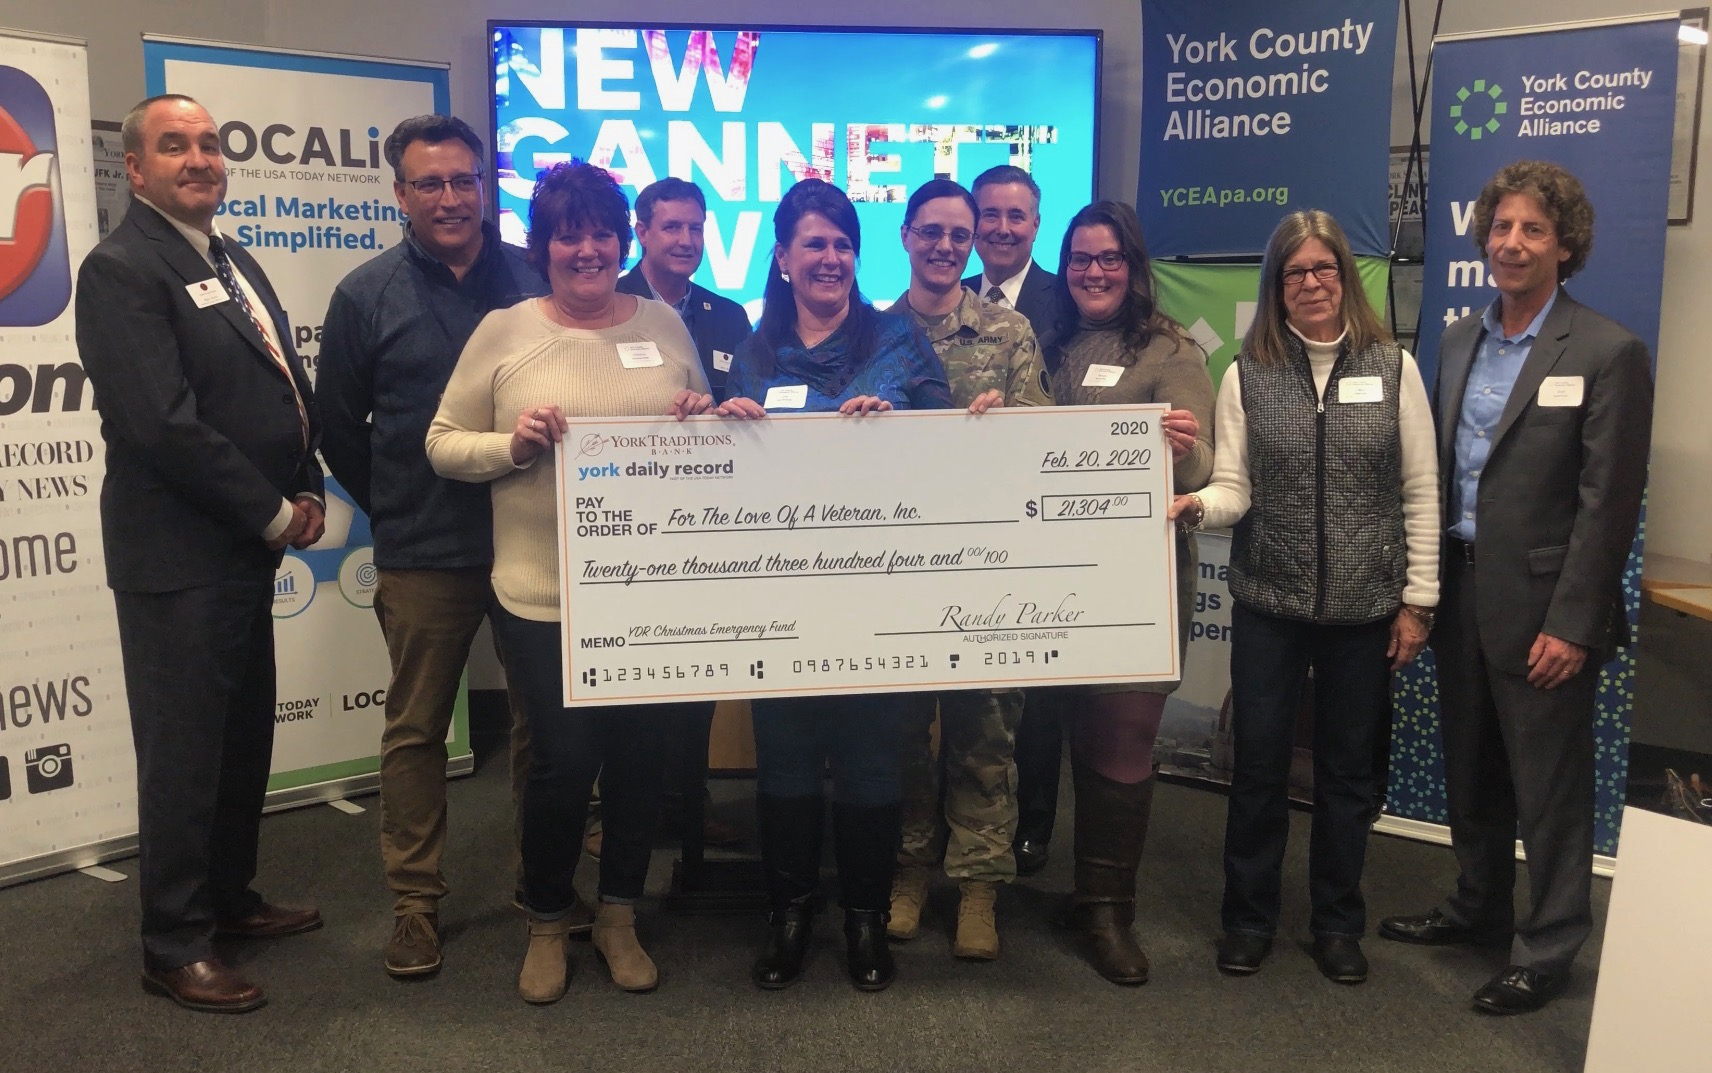 York Traditions Bank Business Services Partners, Mike Kelly (left) and Mike Sharp (4th from left), who are also Veterans, were proud to help present the check from the Christmas Emergency Fund to